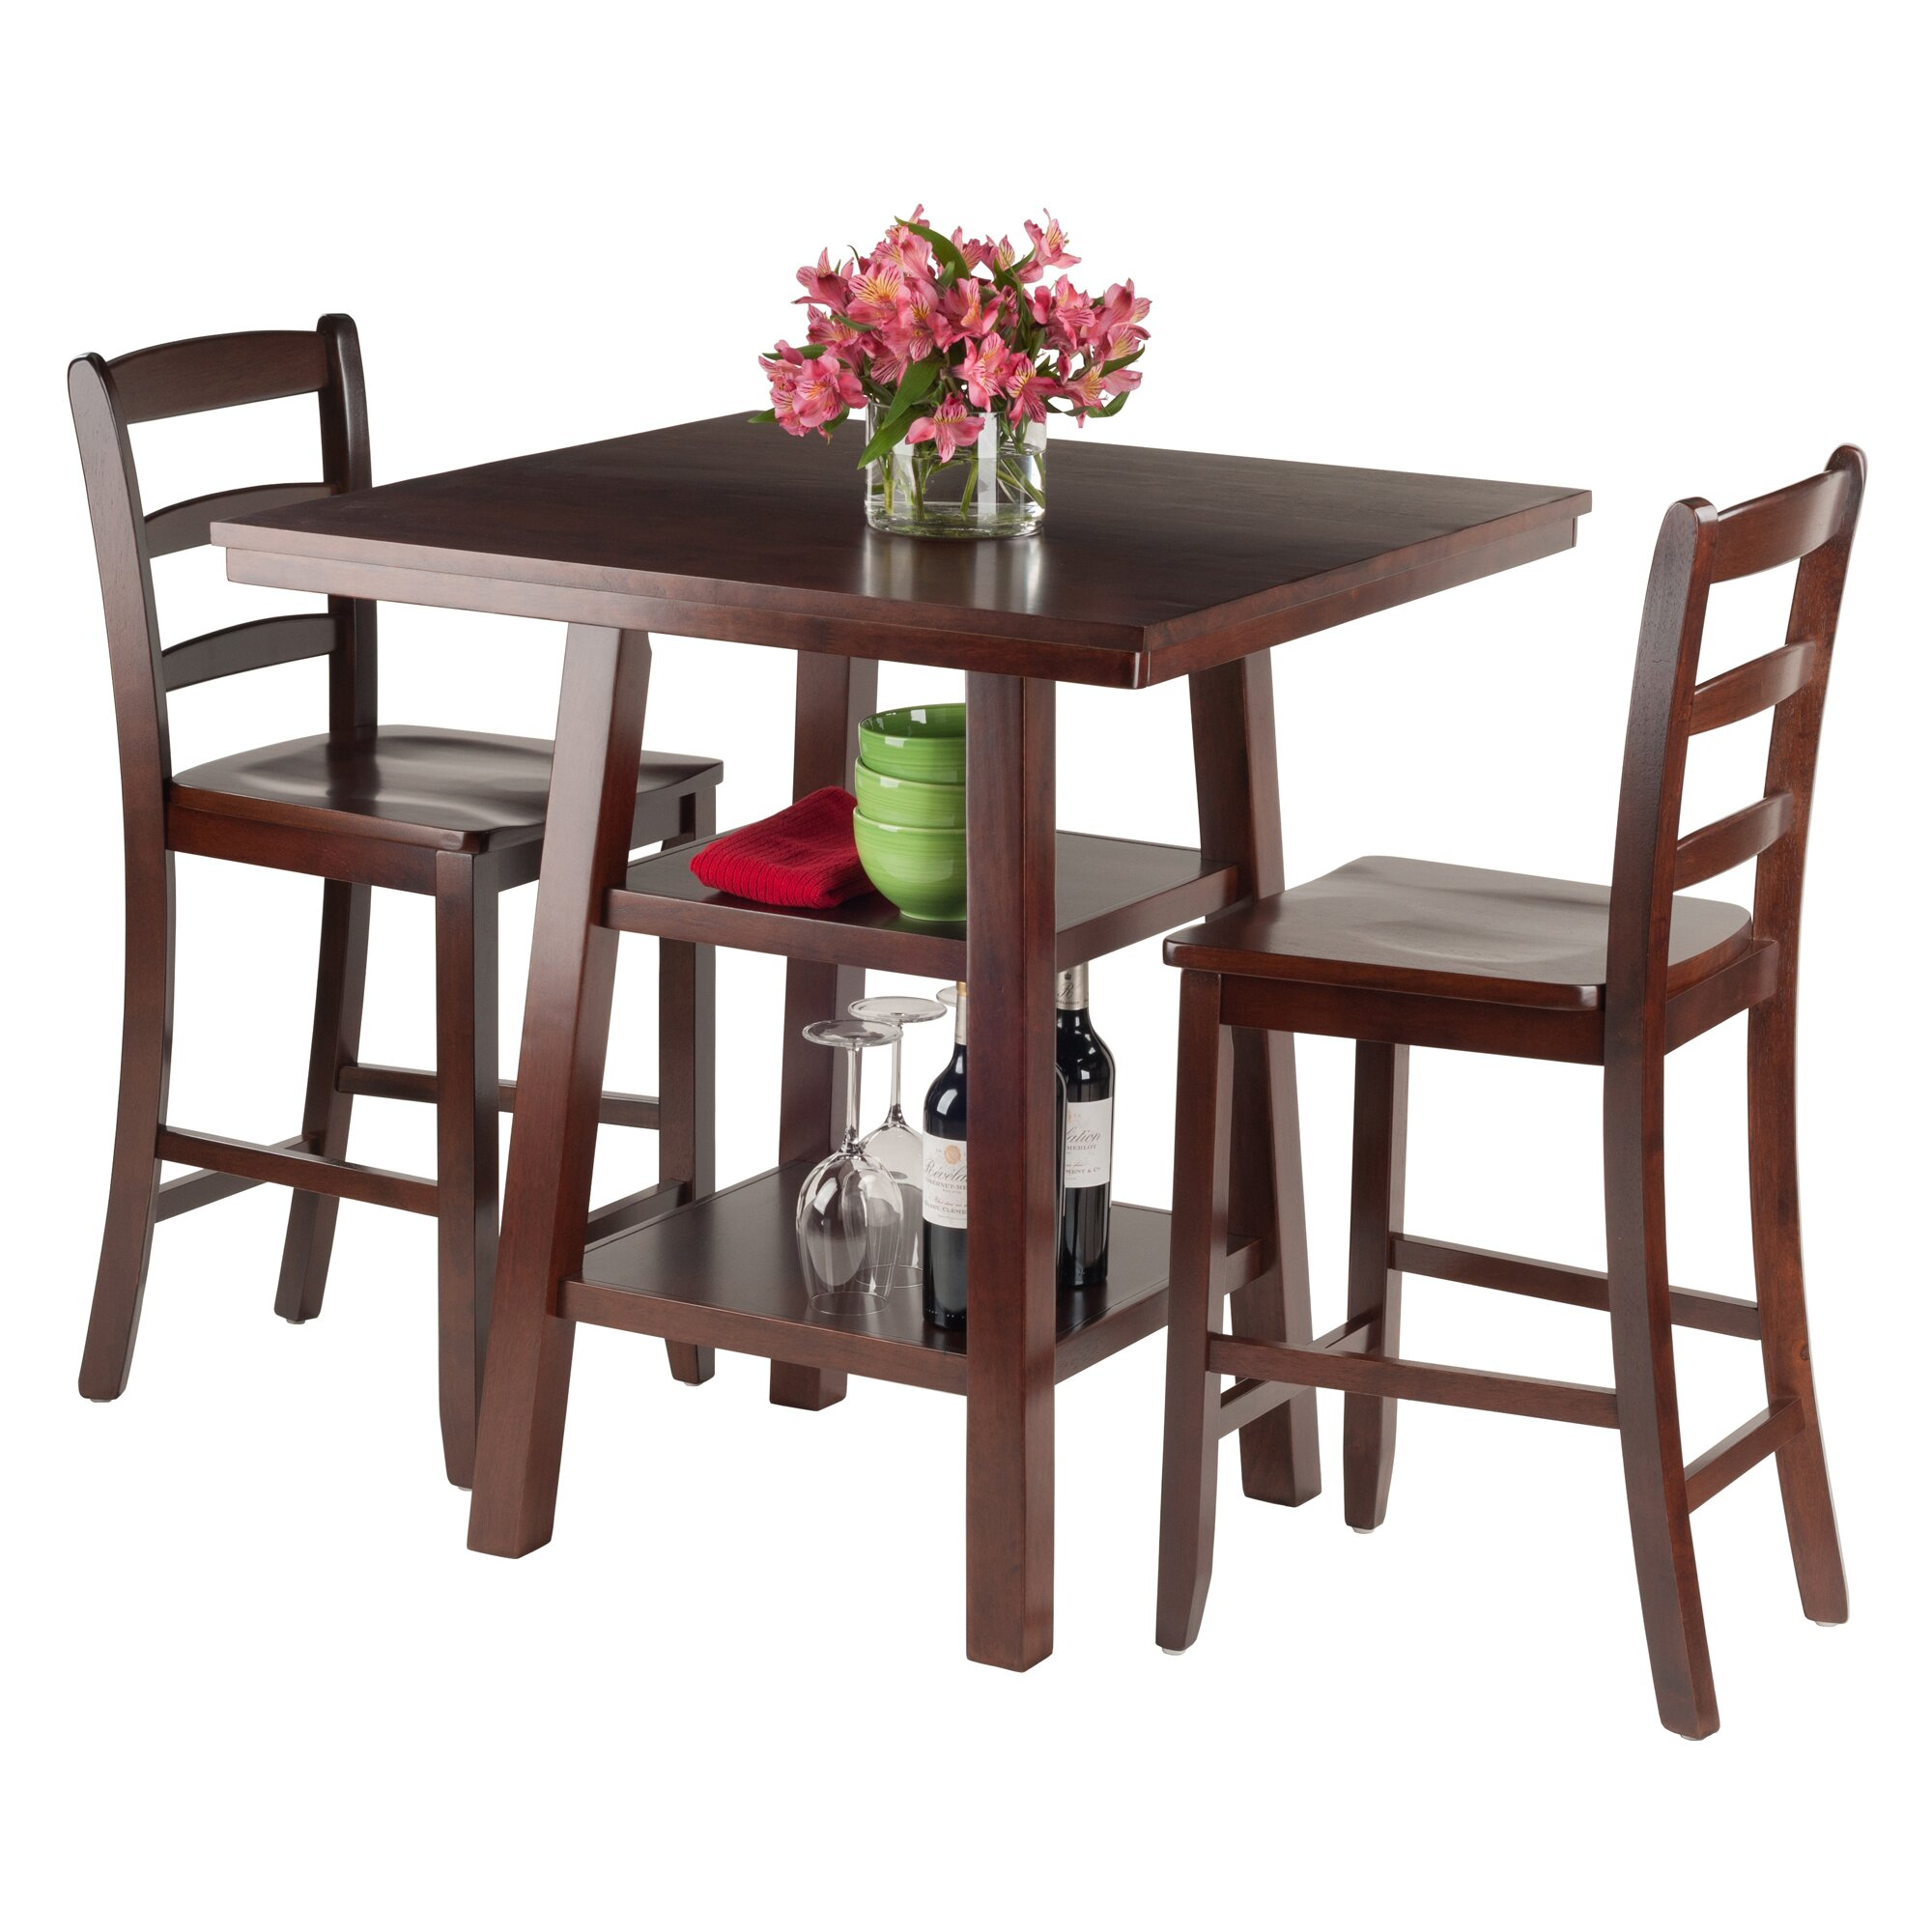 Luxury Home Orlando 3 Piece Pub Table Set Reviews Wayfair